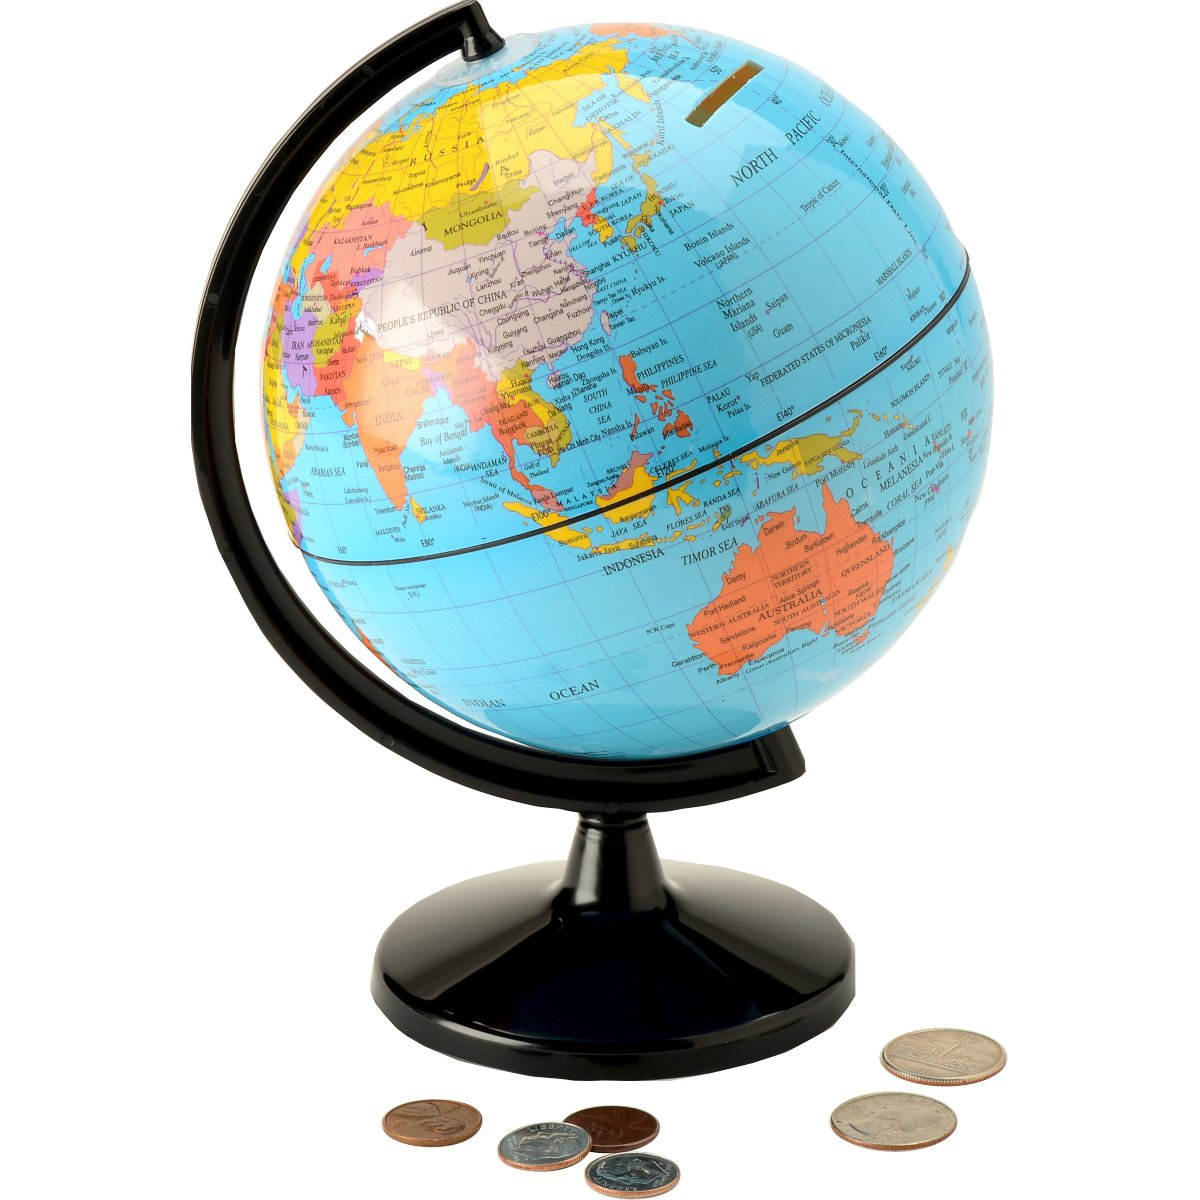 Hemispheres Save the World 5.6'' Coin Bank - Teach Kids to Save Money & Learn Places Around the World - Great for Desk or Table Placement by Waypoint Geographic